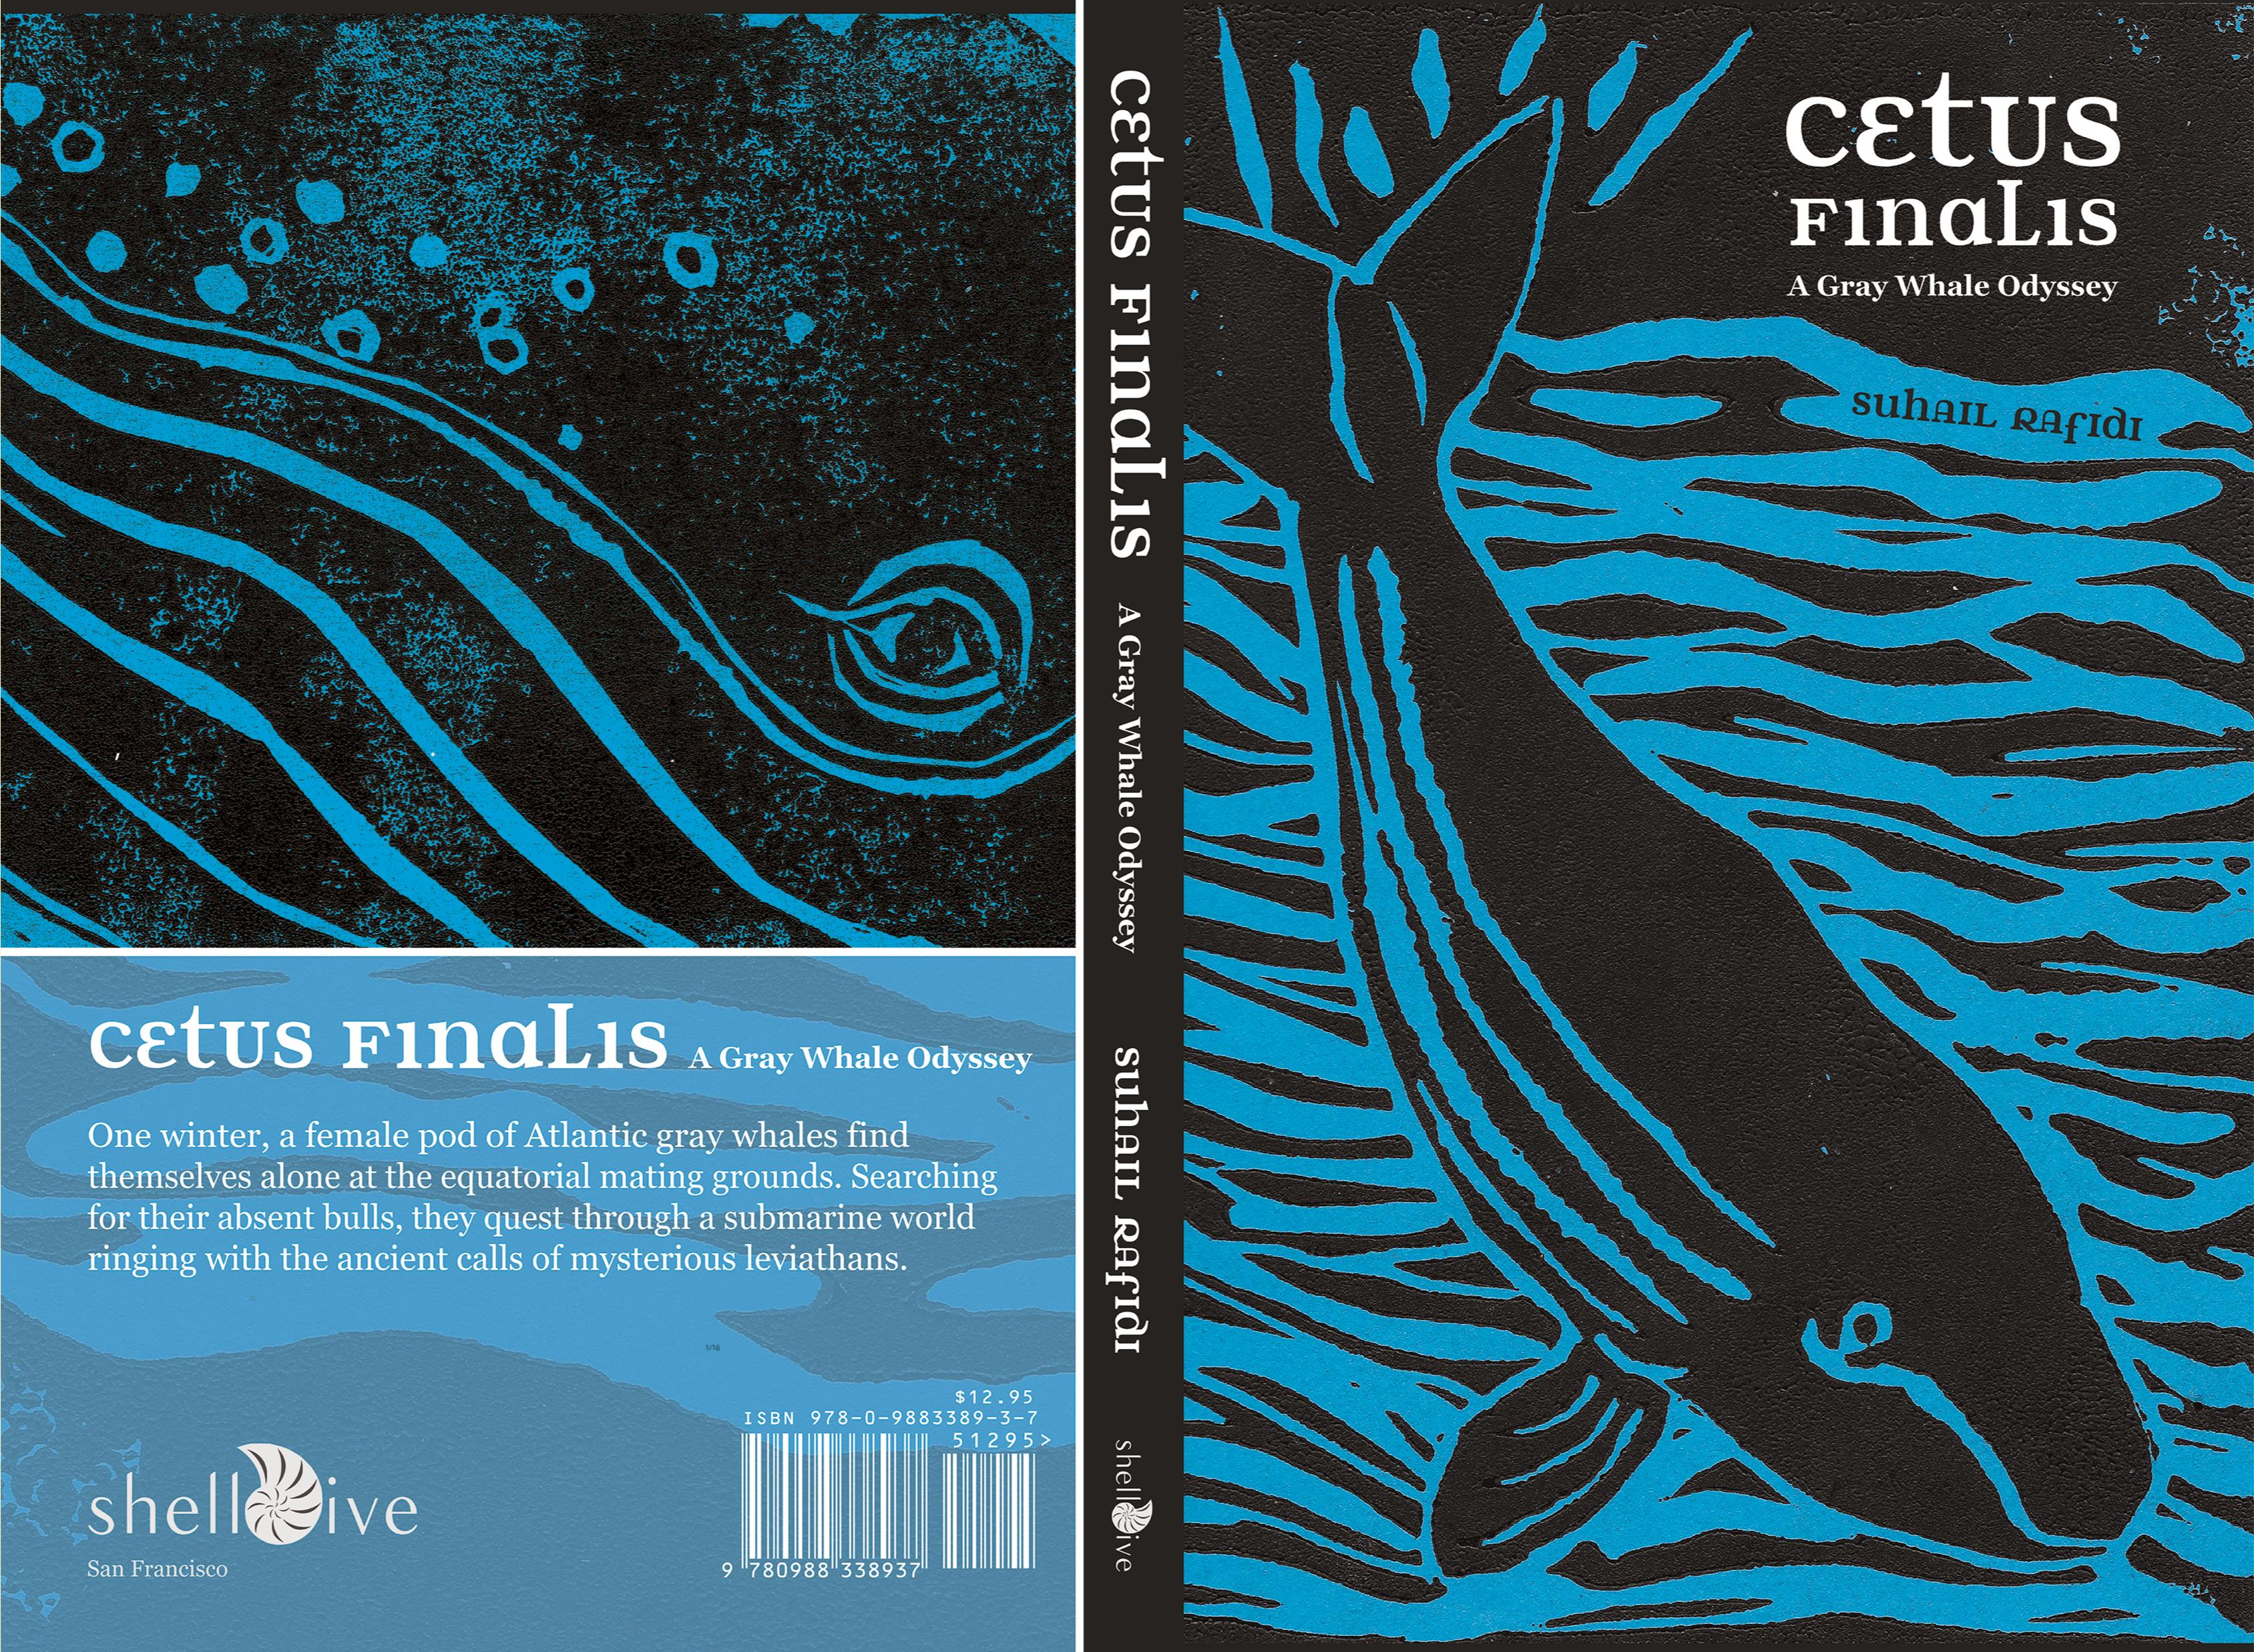 Cetus Finalis: A Gray Whale Odyssey cover image